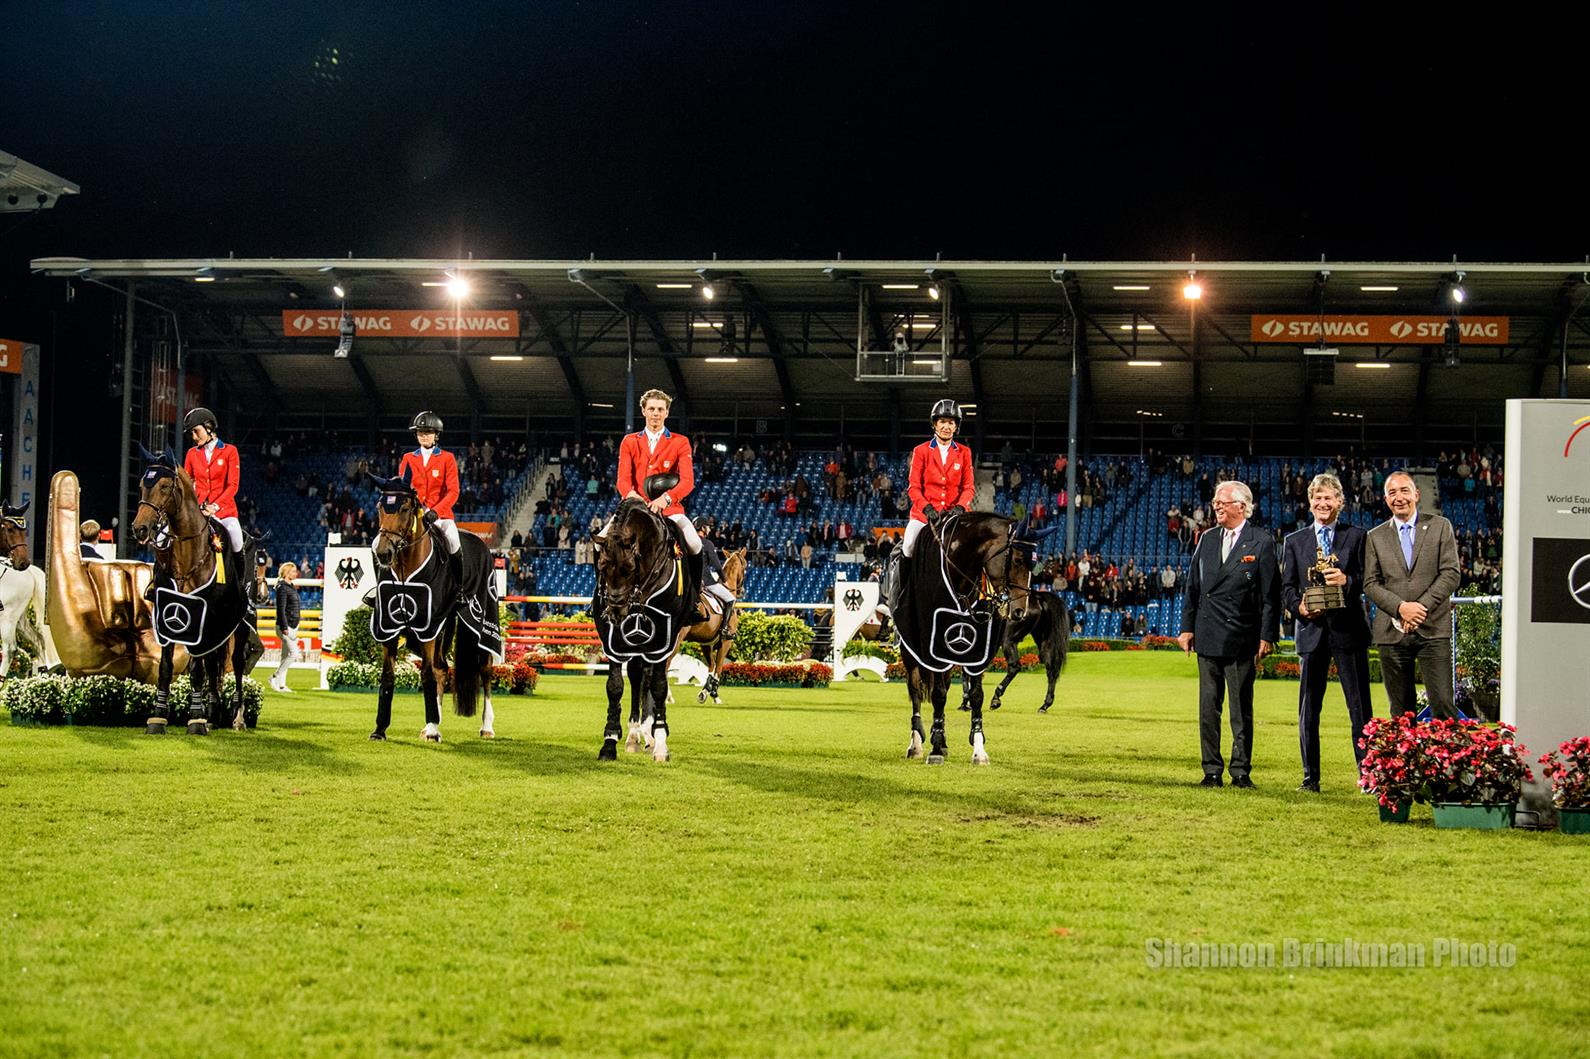 NetJets® U.S. Jumping Team Clinches Victory in CHIO Aachen Mercedes-Benz Nations  Cup CSIO5*   US Equestrian